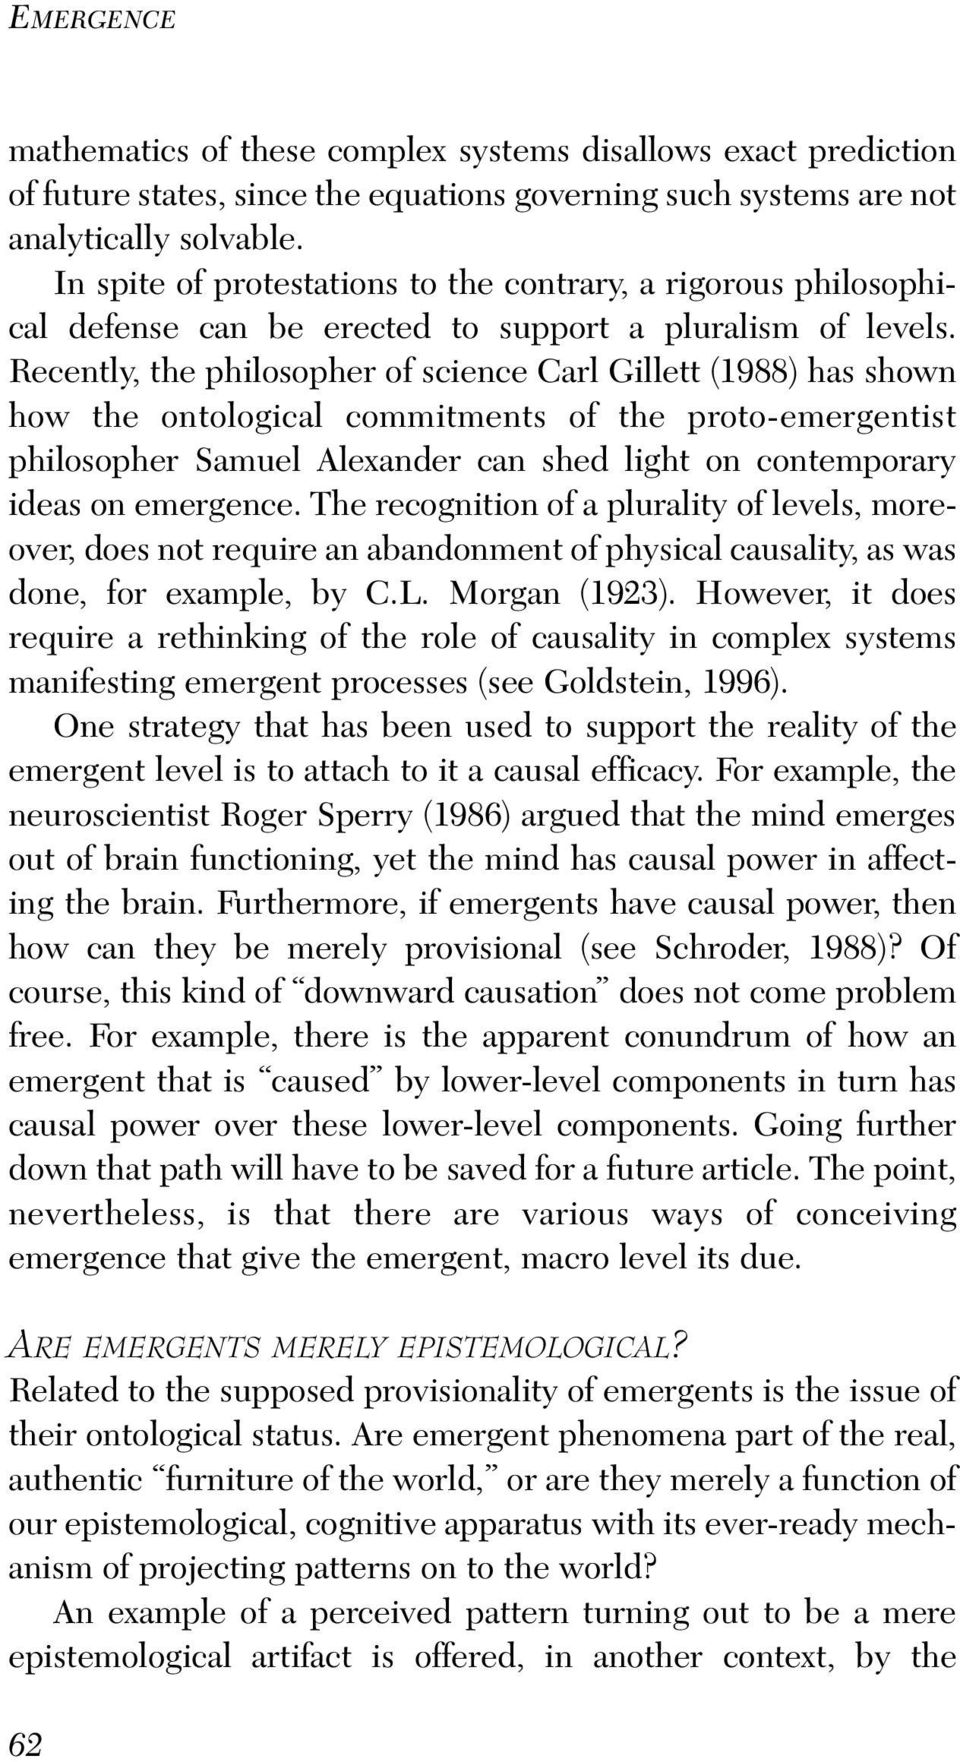 Recently, the philosopher of science Carl Gillett (1988) has shown how the ontological commitments of the proto-emergentist philosopher Samuel Alexander can shed light on contemporary ideas on